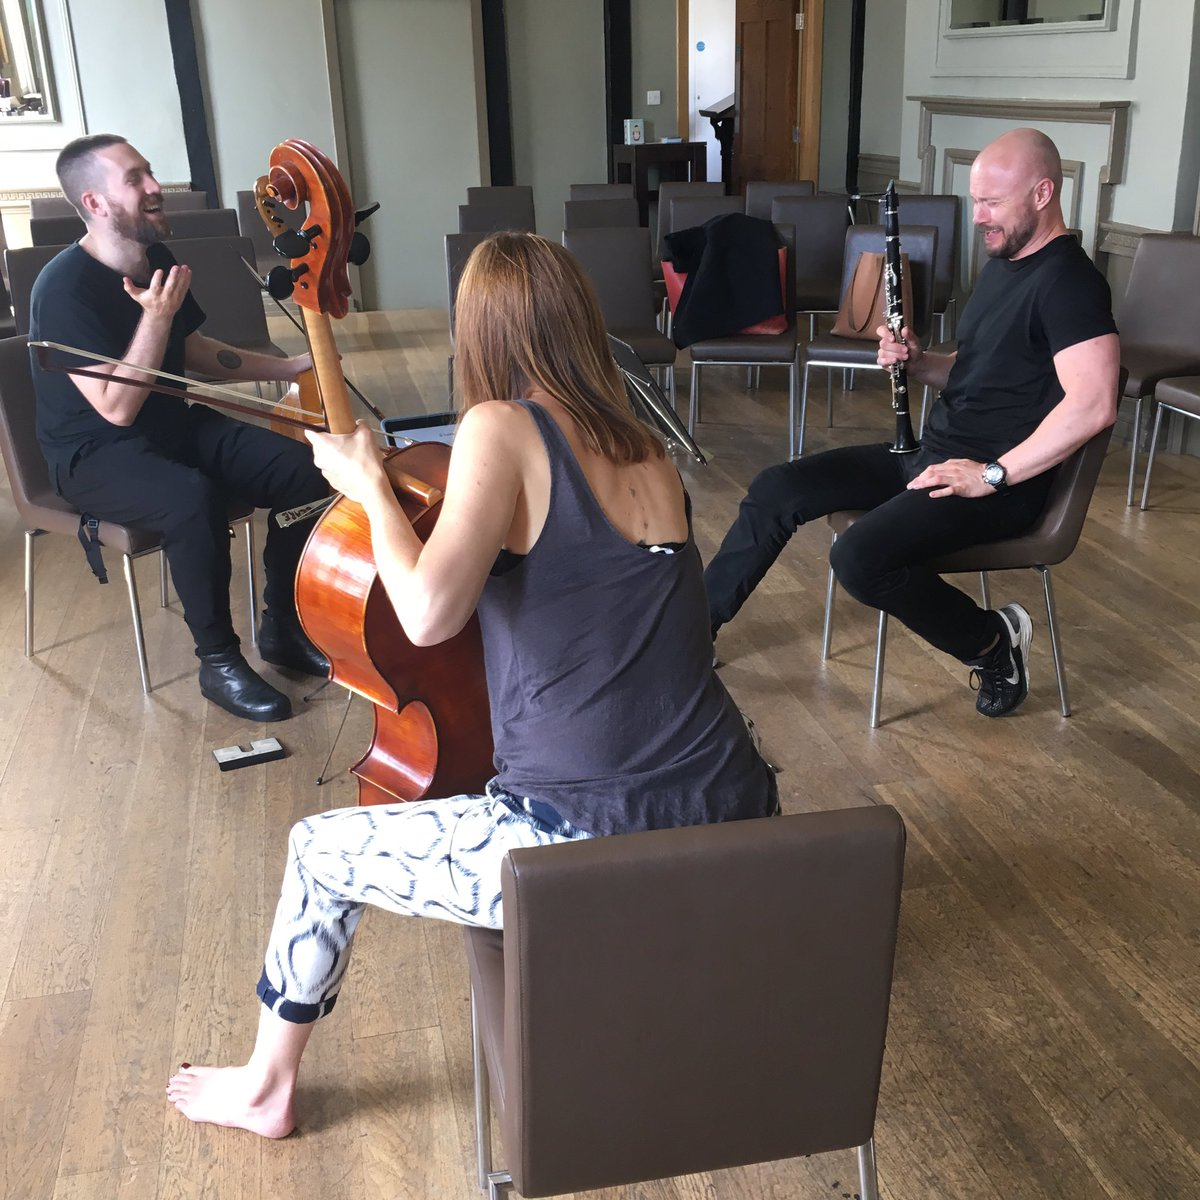 Happy together making beautiful sounds, in divine flow - rehearsing for @KABerkhamsted tonight #SummerMusic #ViolaDaGamba #Cello #Clarinet <br>http://pic.twitter.com/O9HSdCdpZF